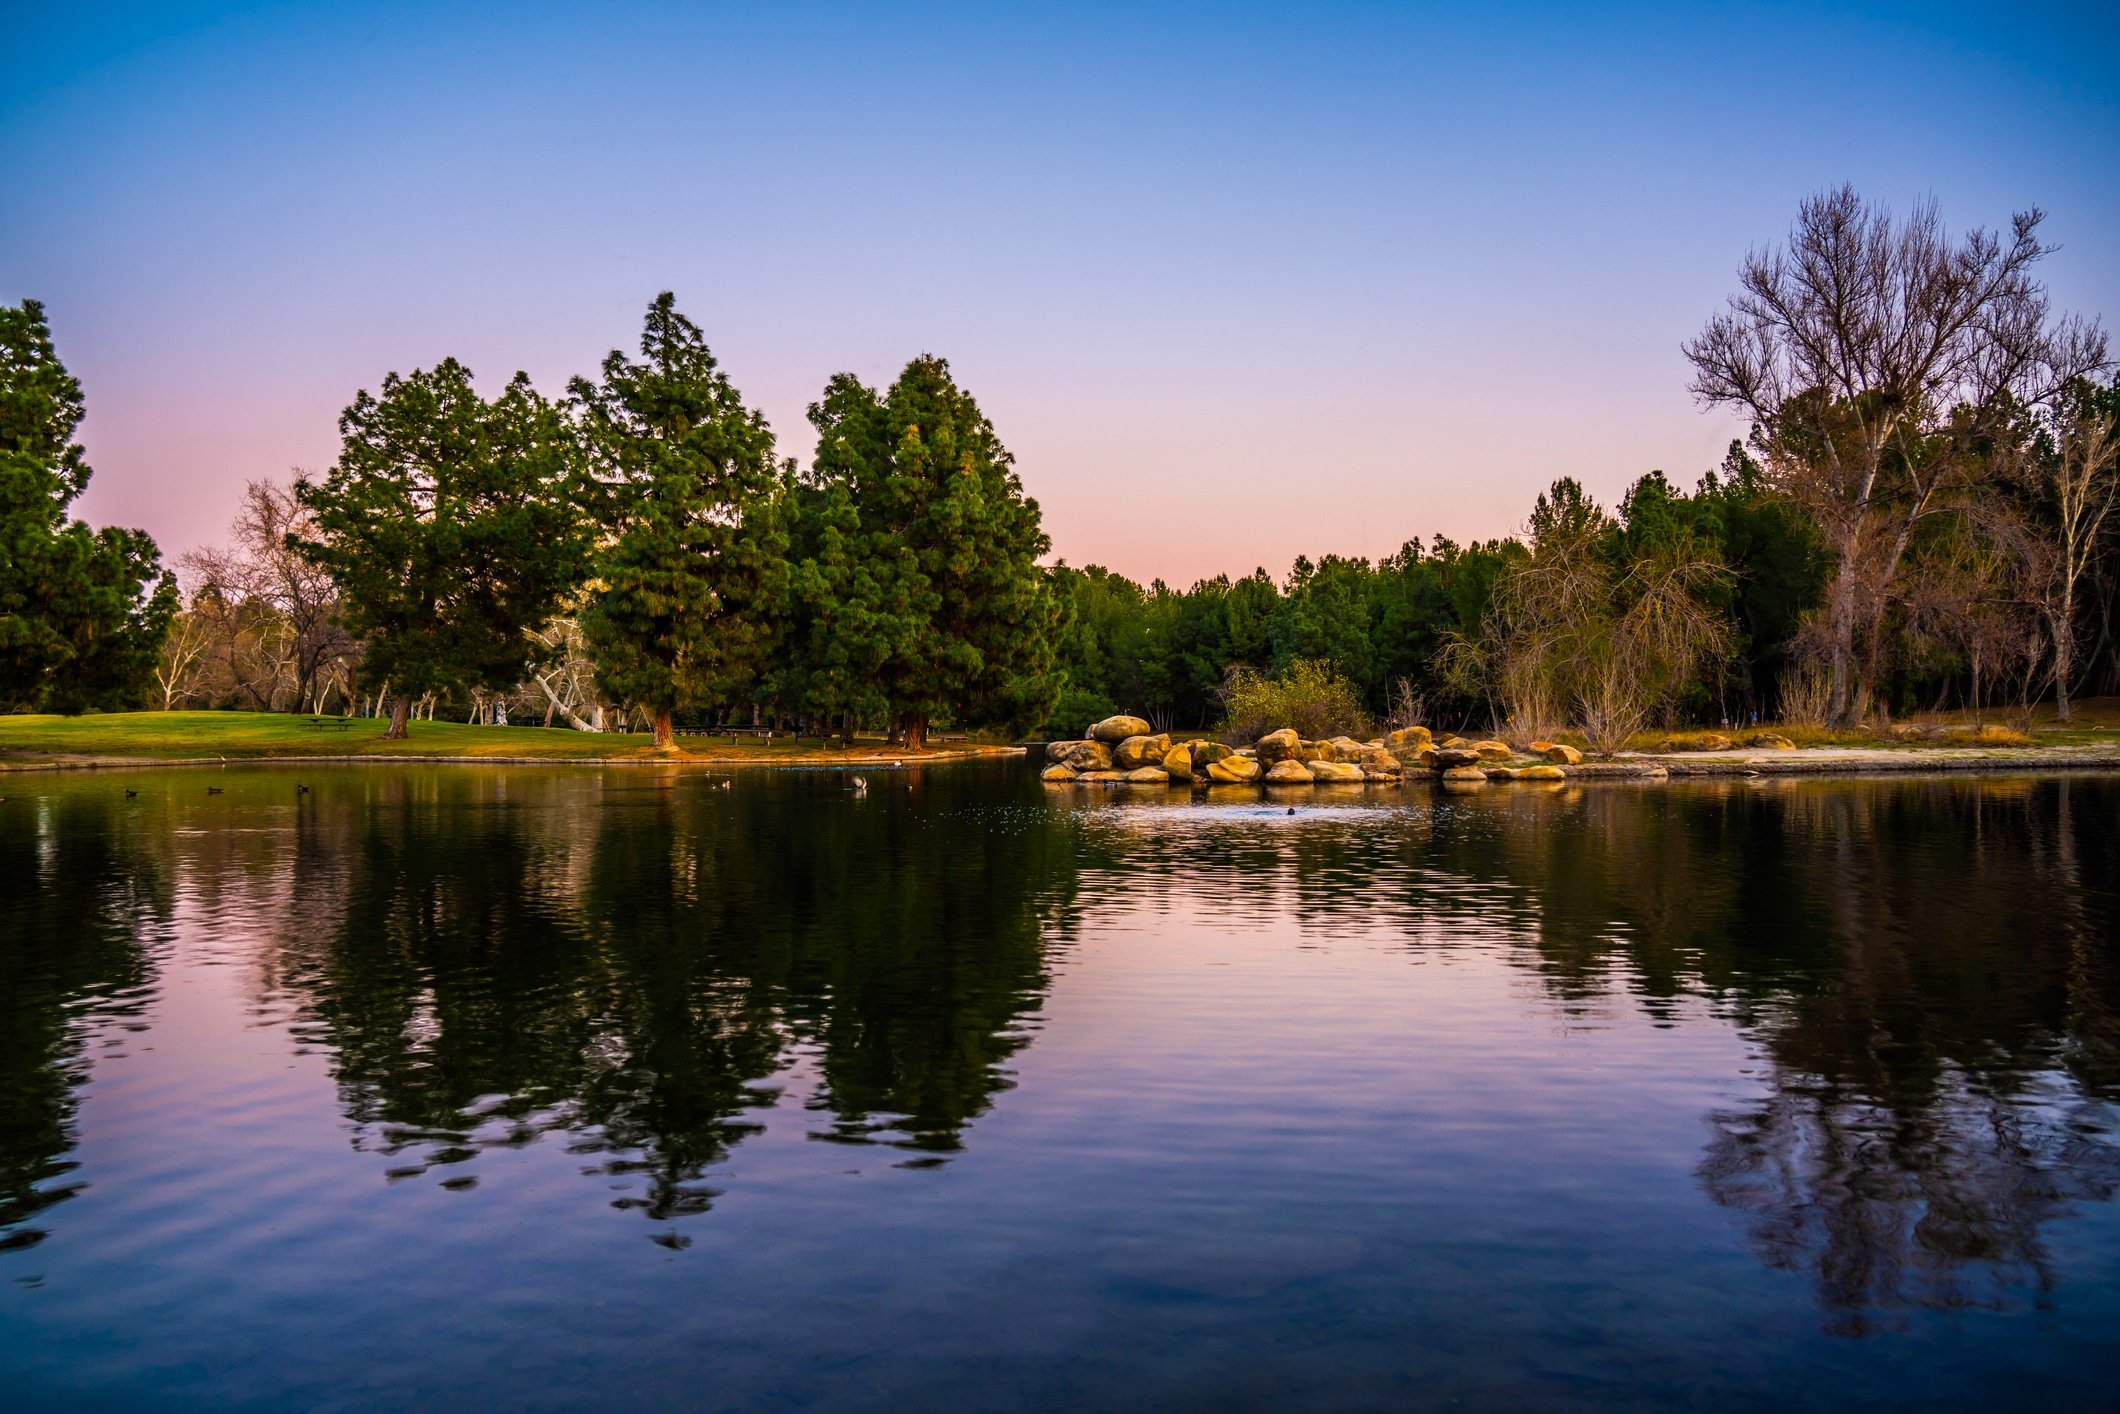 View over the lake at Yorba Regional Park in Anaheim at dusk.